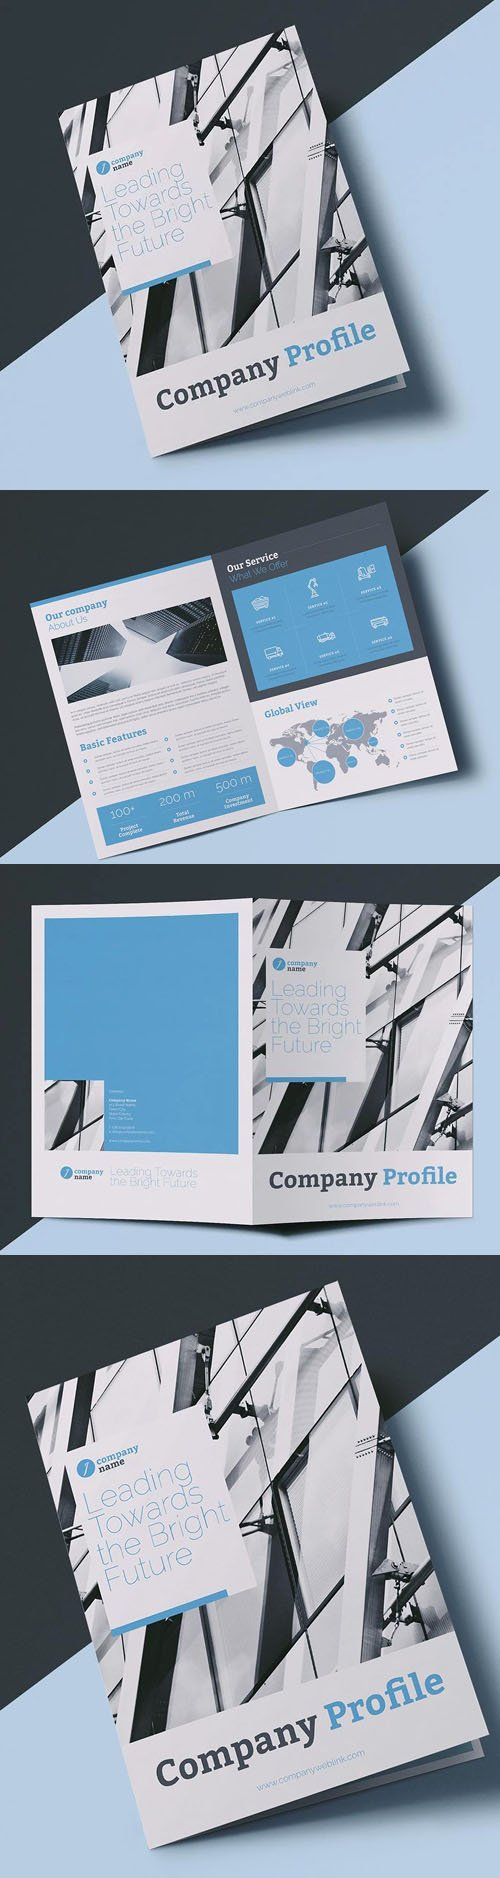 Company Profile InDesign INDD/IDML Brochure Template [4-Pages]